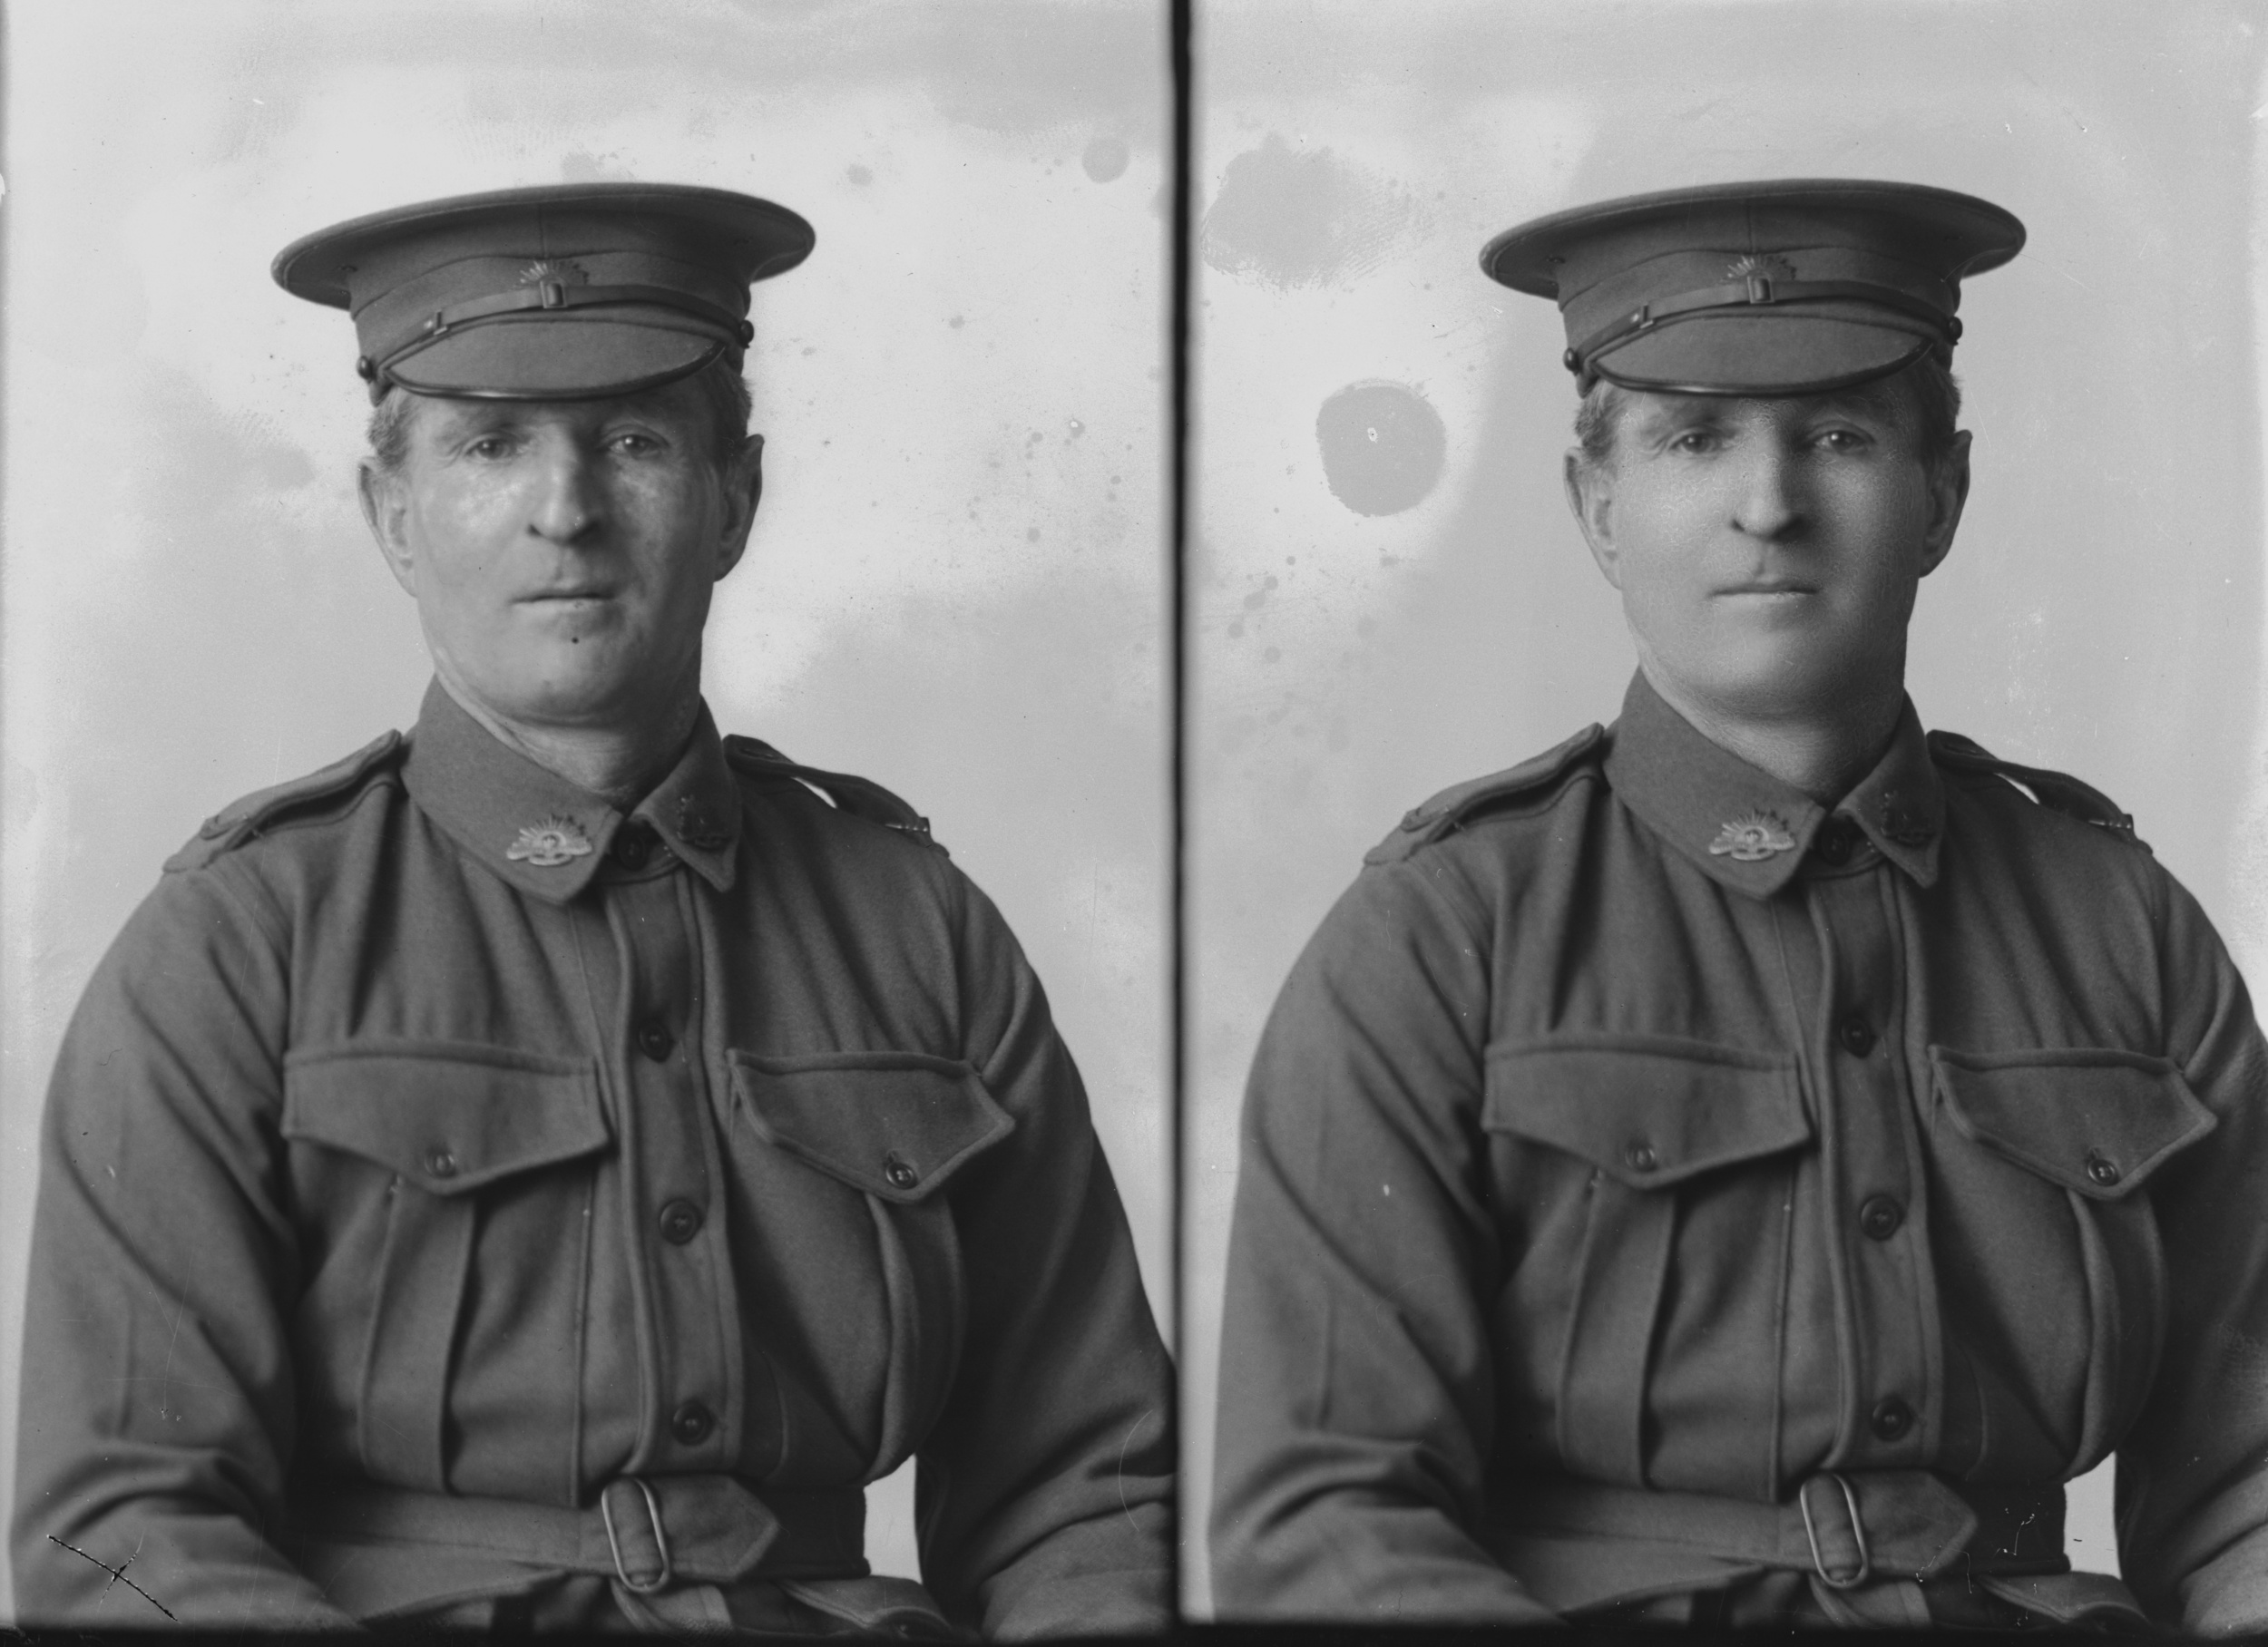 Photographed at the Dease Studio, 117 Barrack Street Perth WA Image courtesy of the State Library of Western Australia: 108363PD